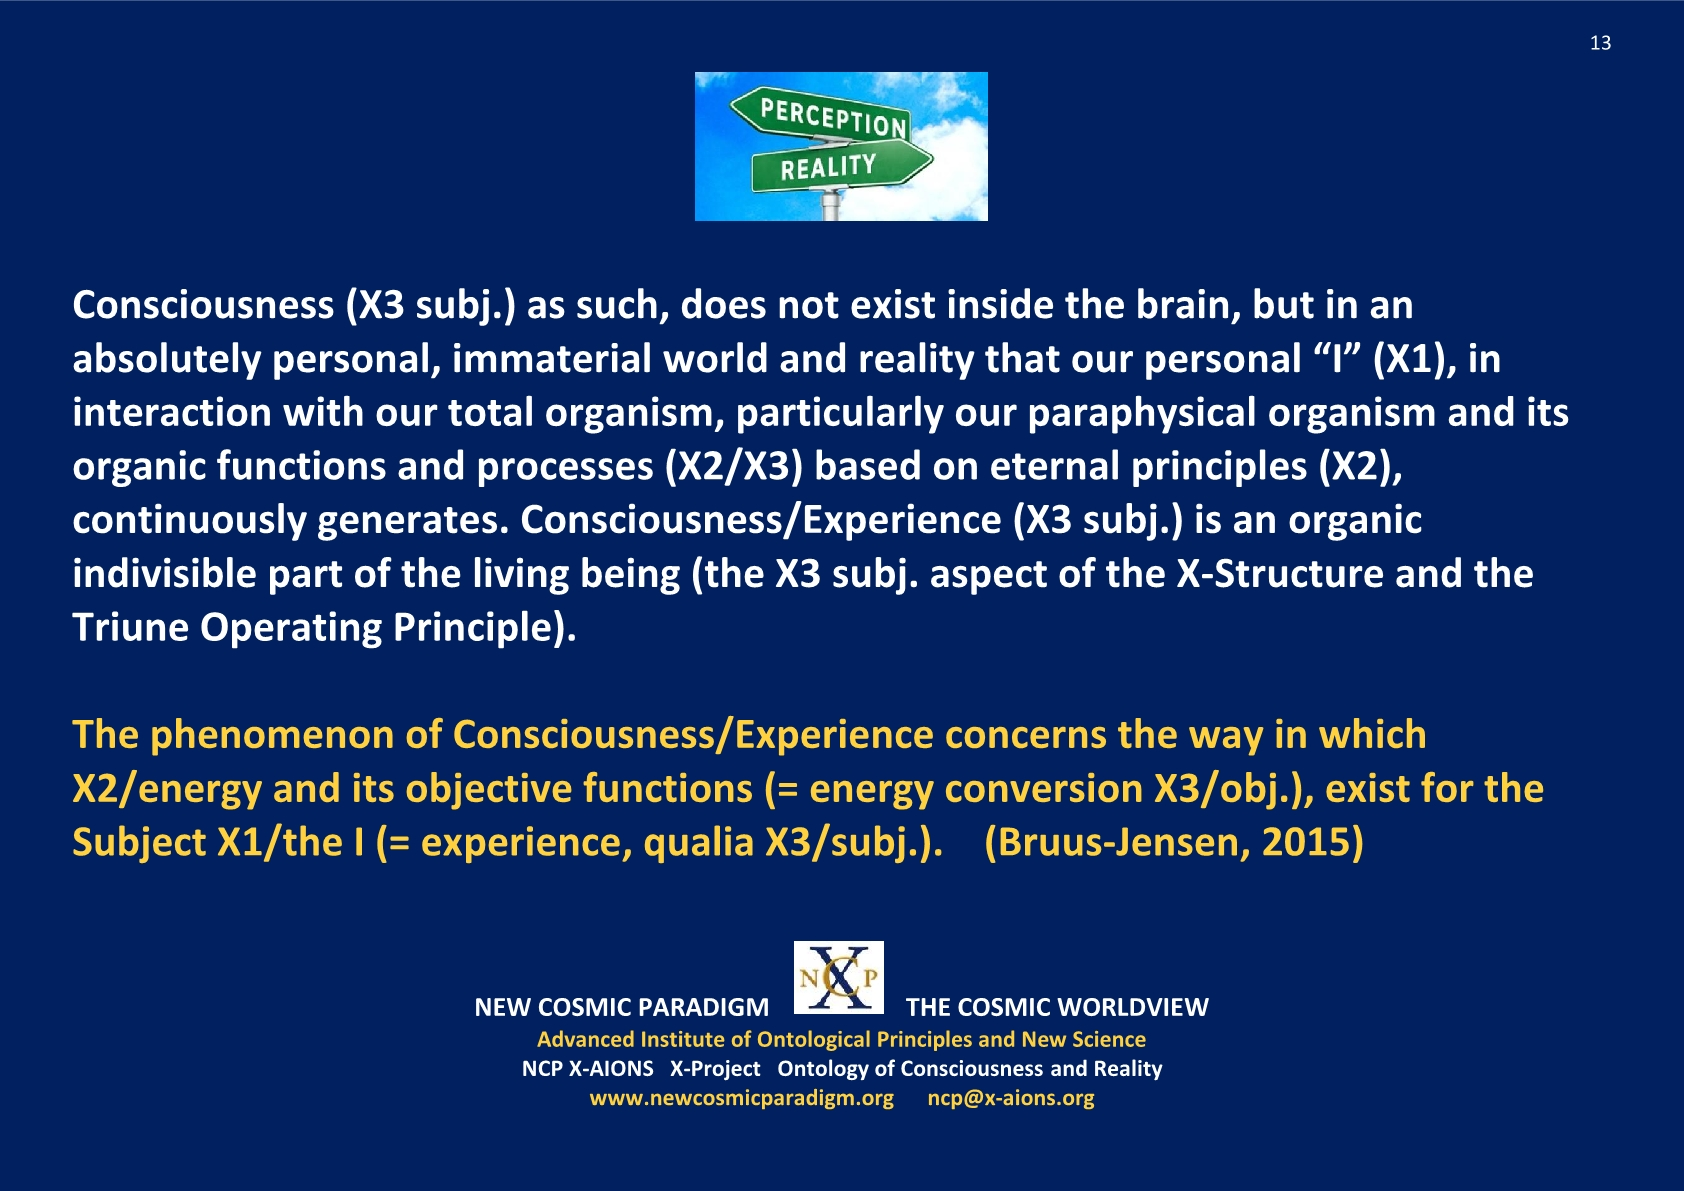 Life-Experience, paraphysical organism, The I; NCP X-AIONS